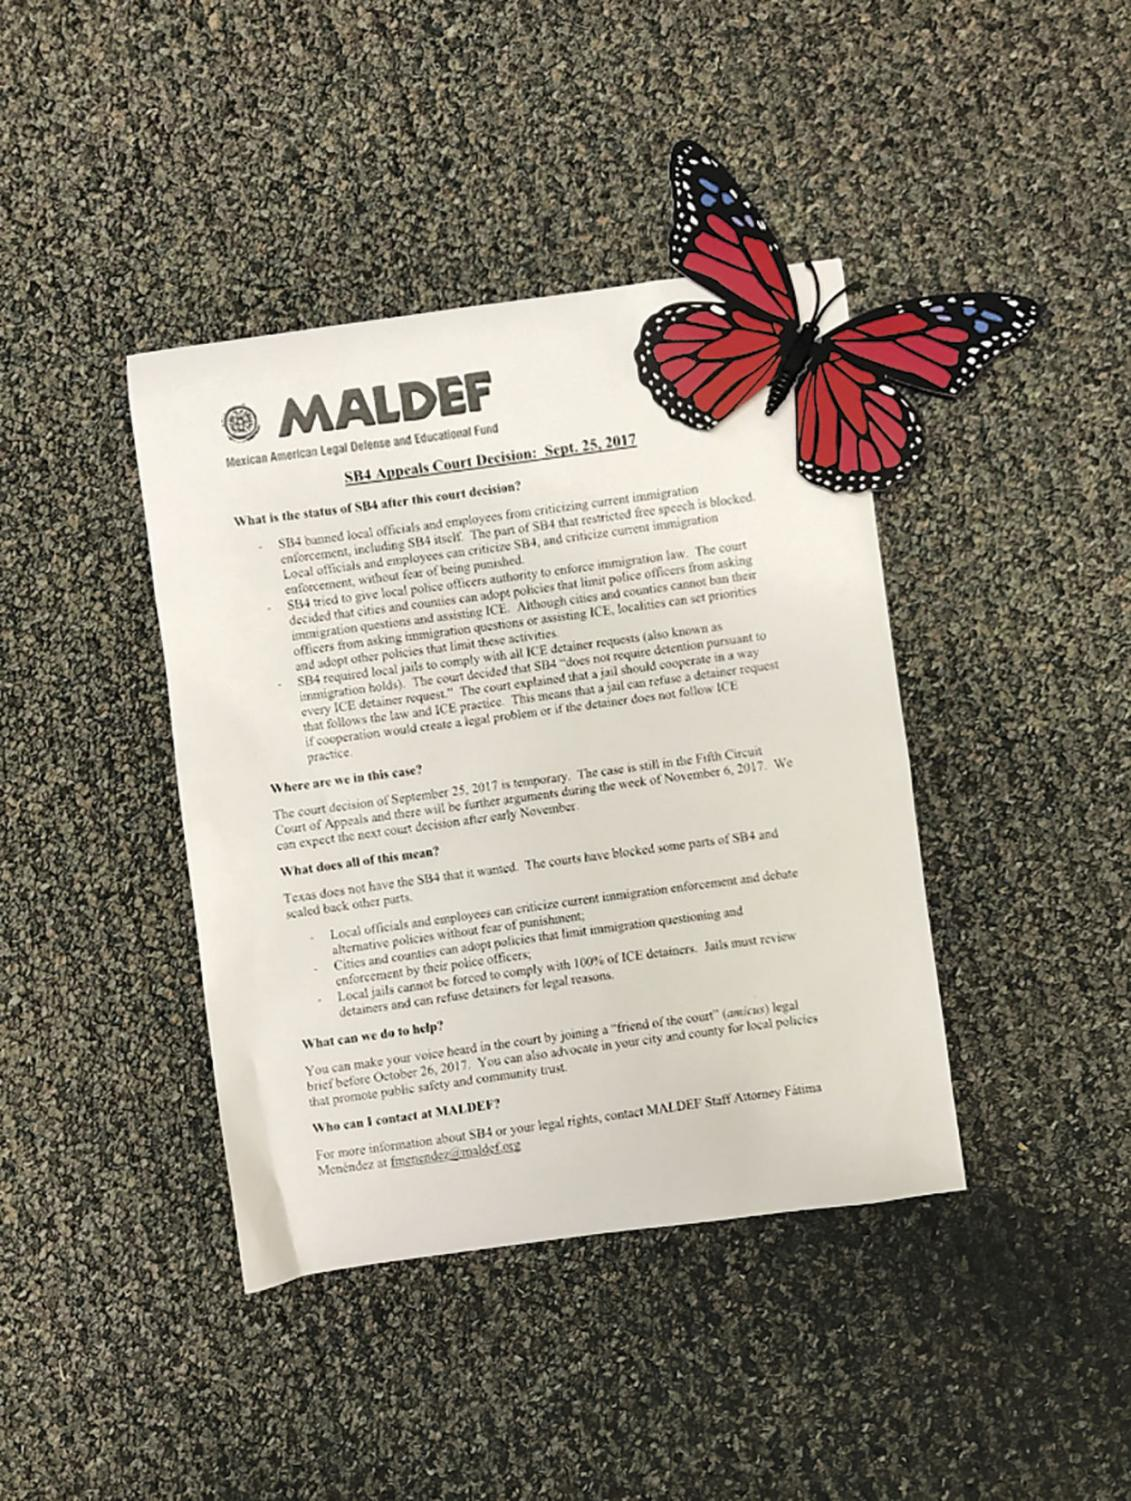 Information about SB4 was handed out to attendees.